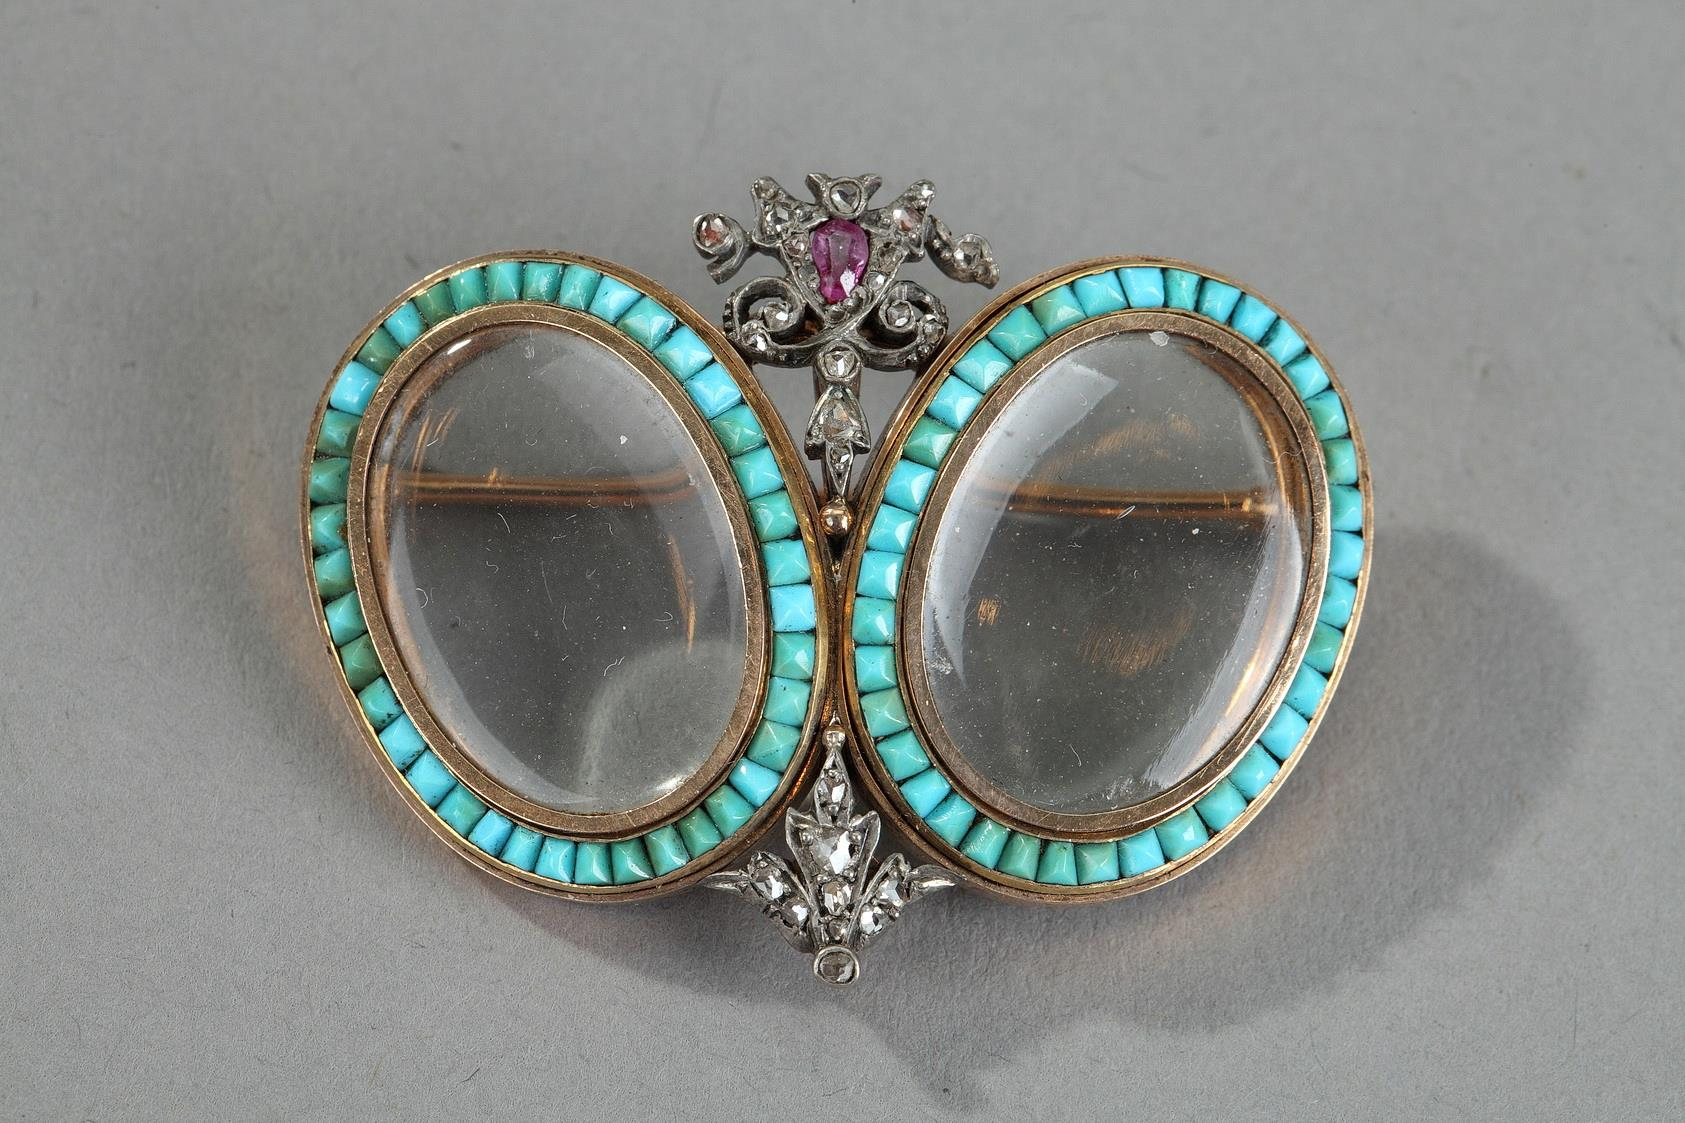 Gold, turquoise, diamonds and rubies brooche. 19 Century.